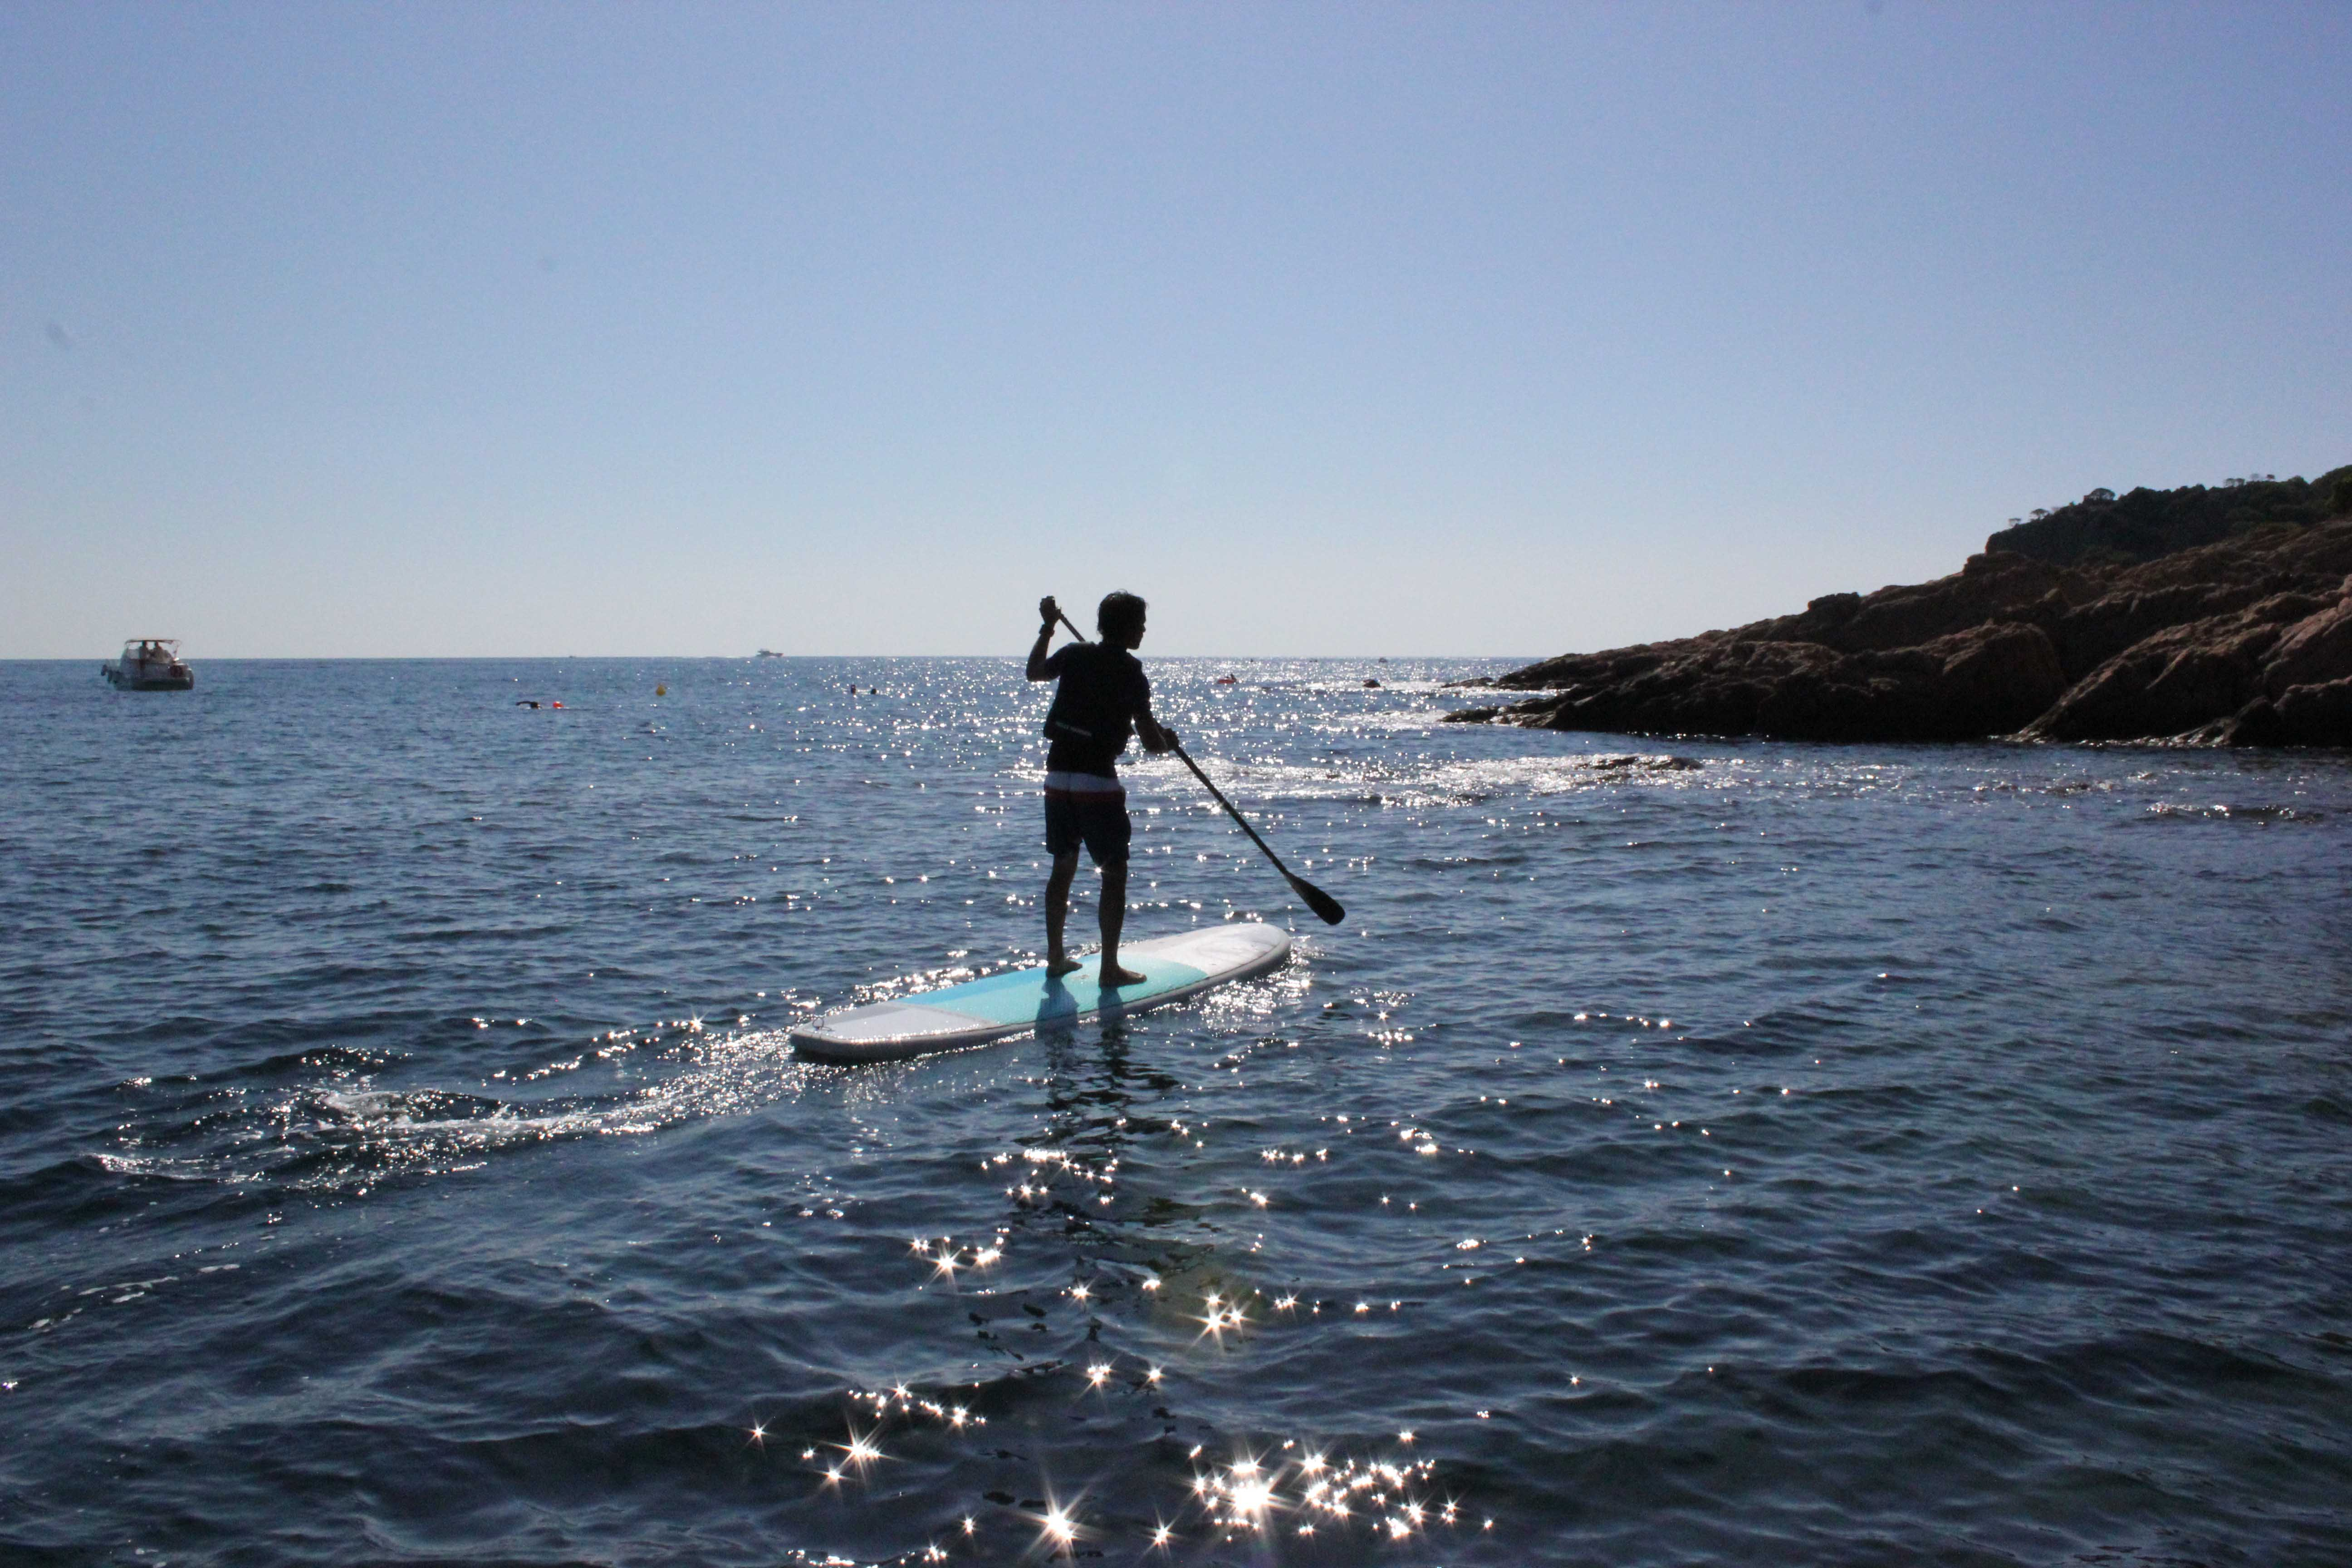 Monitor SUP stand up paddle